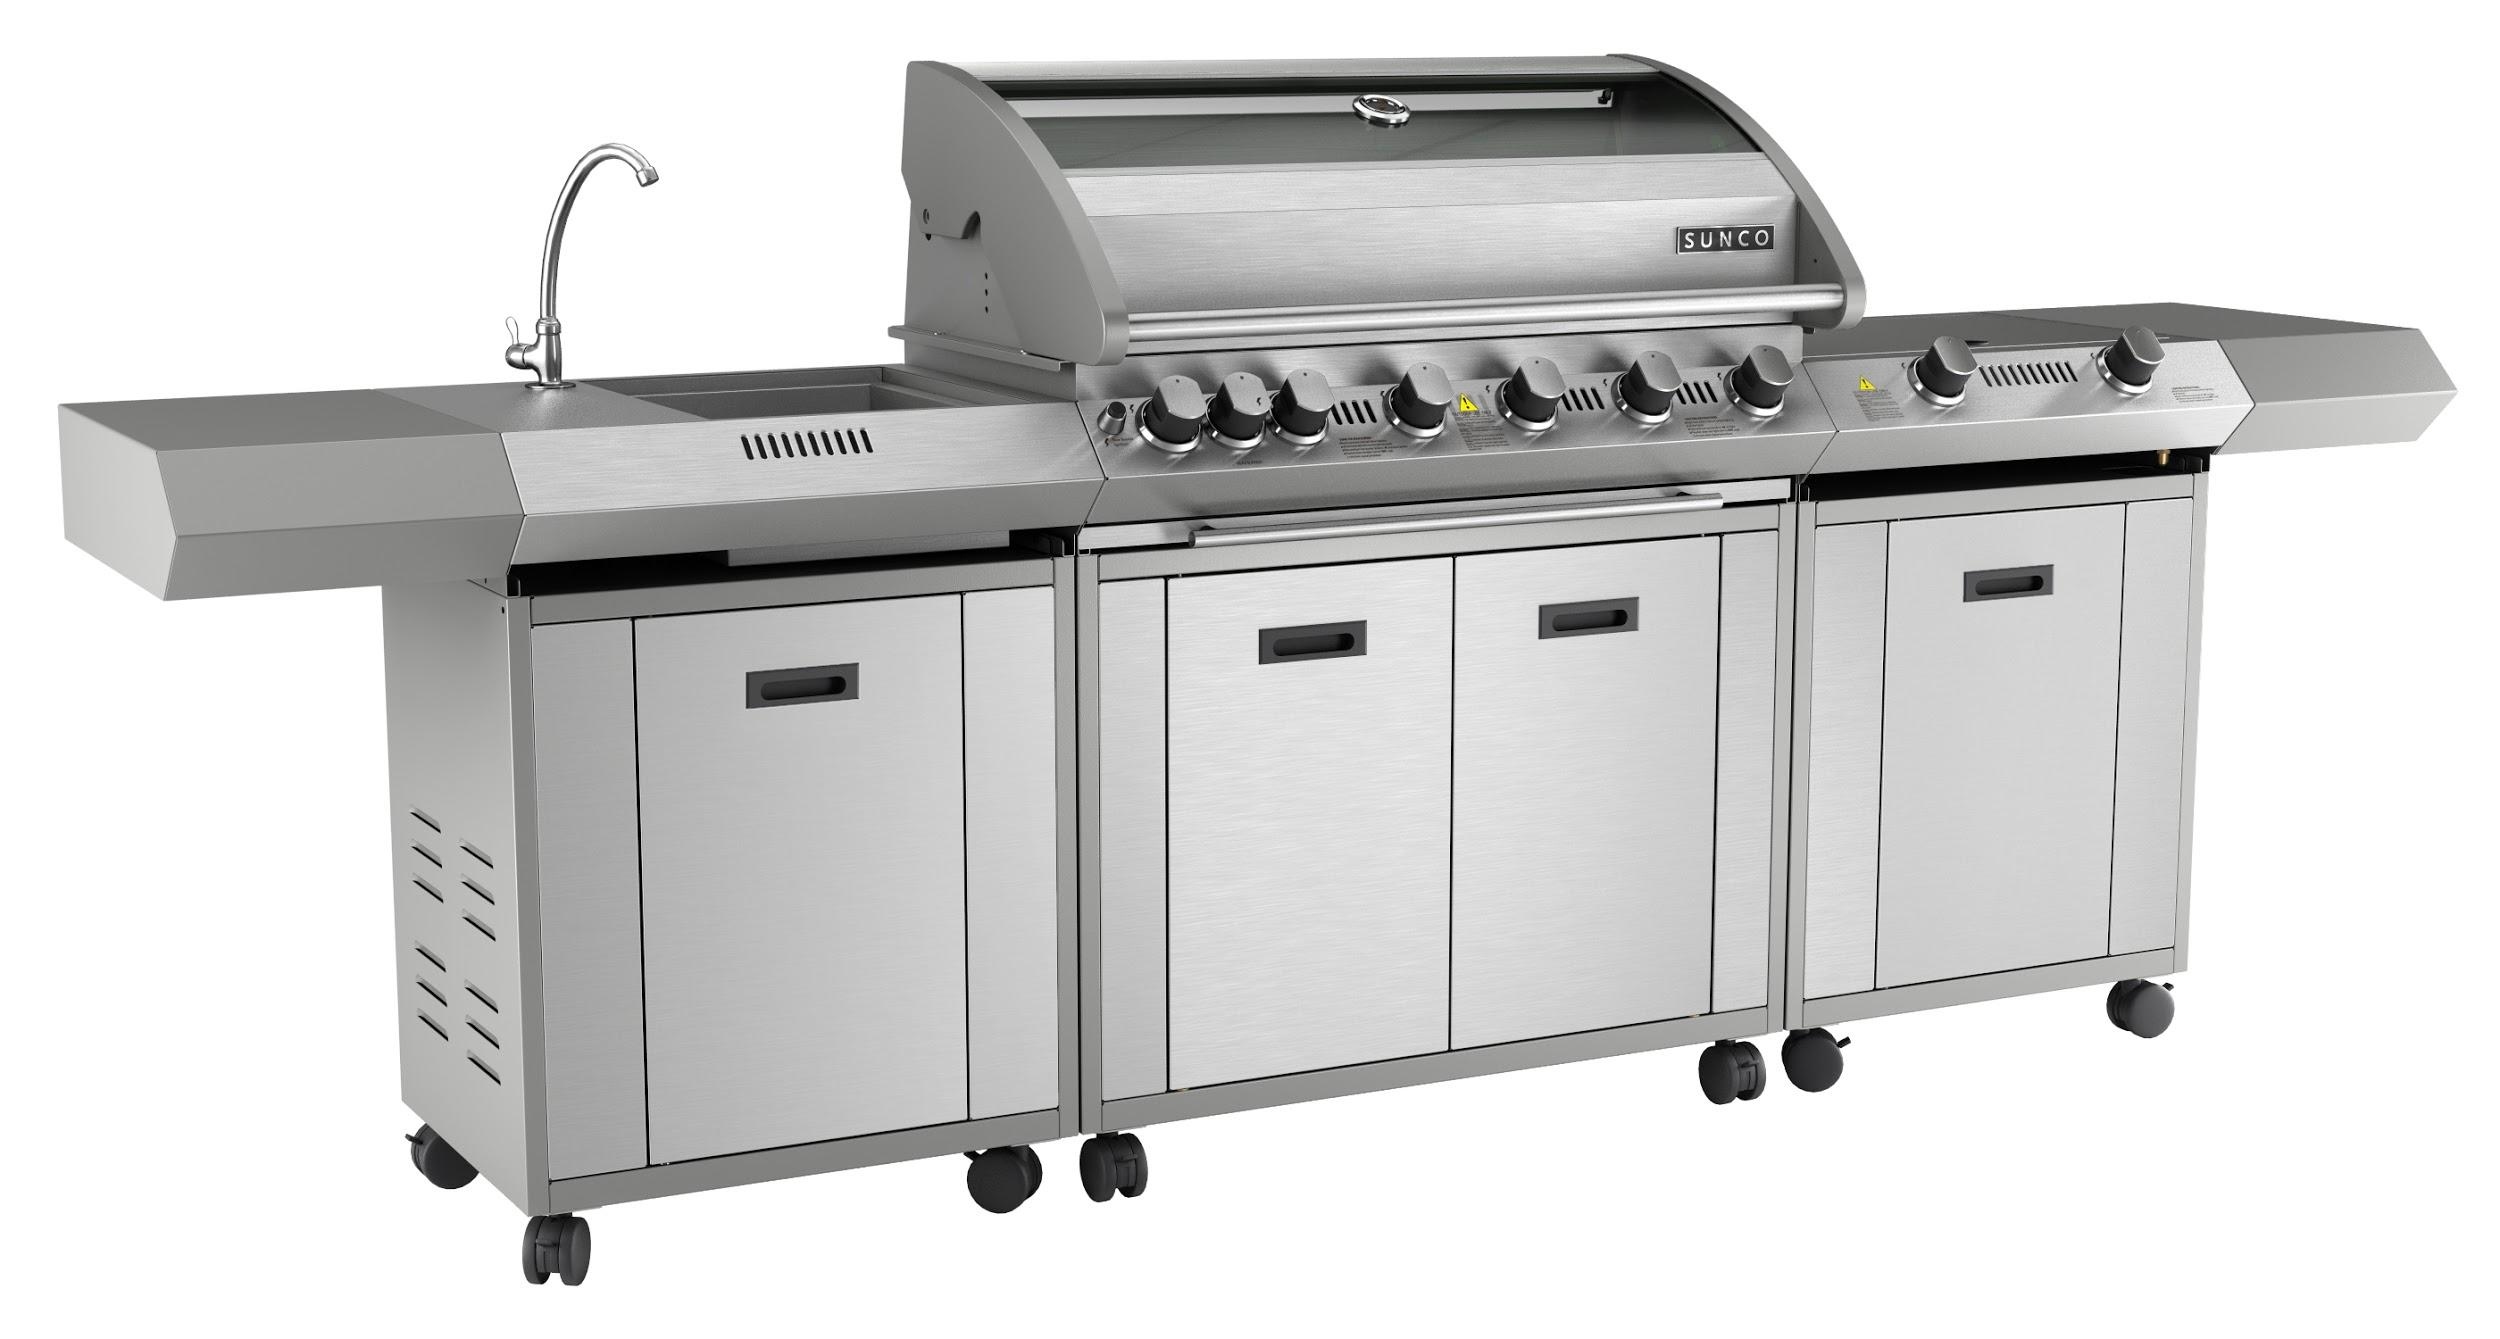 Grilling in the great outdoors essential ideas for your for Outdoor kitchen bbq grill